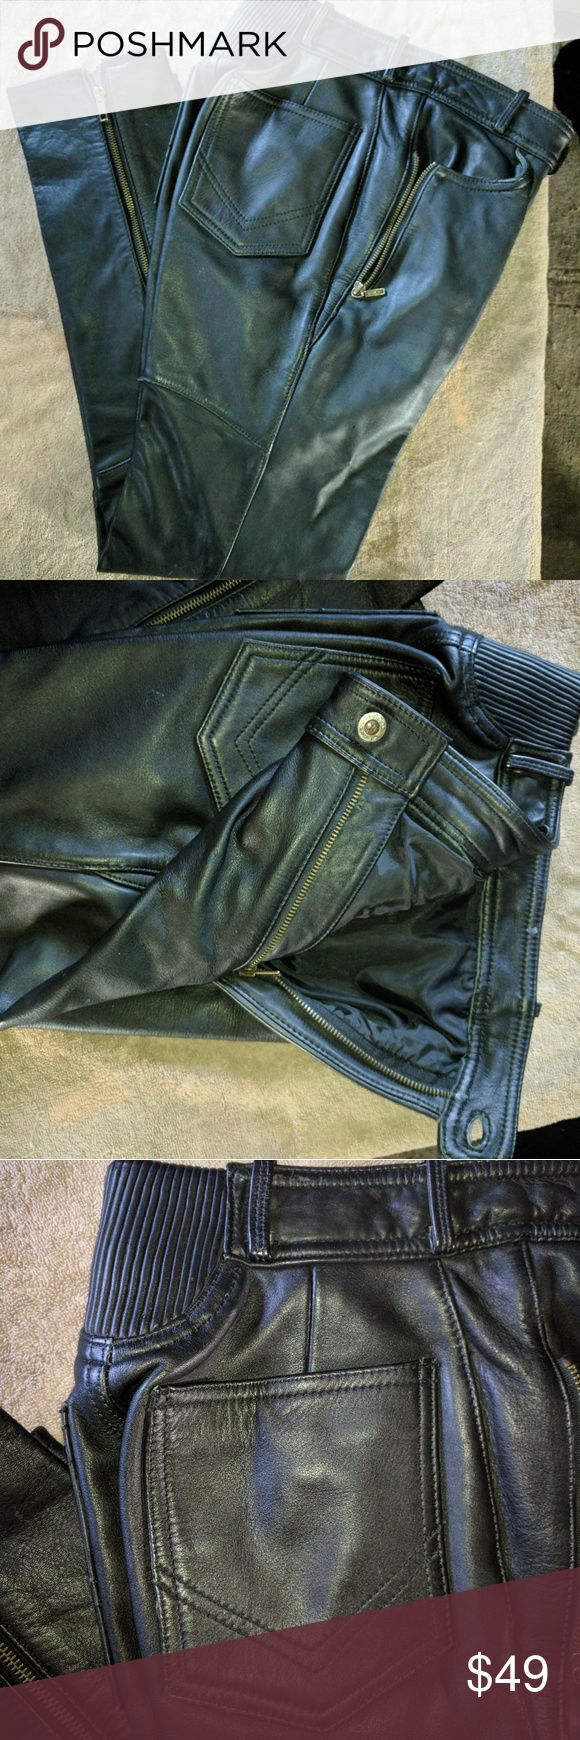 Easyriders black leather riding pants Genuine leather, side zip front pockets, zip ankle, gathered rear waist band, Chevron pocket design, fully lined. Pants Ankle & Cropped